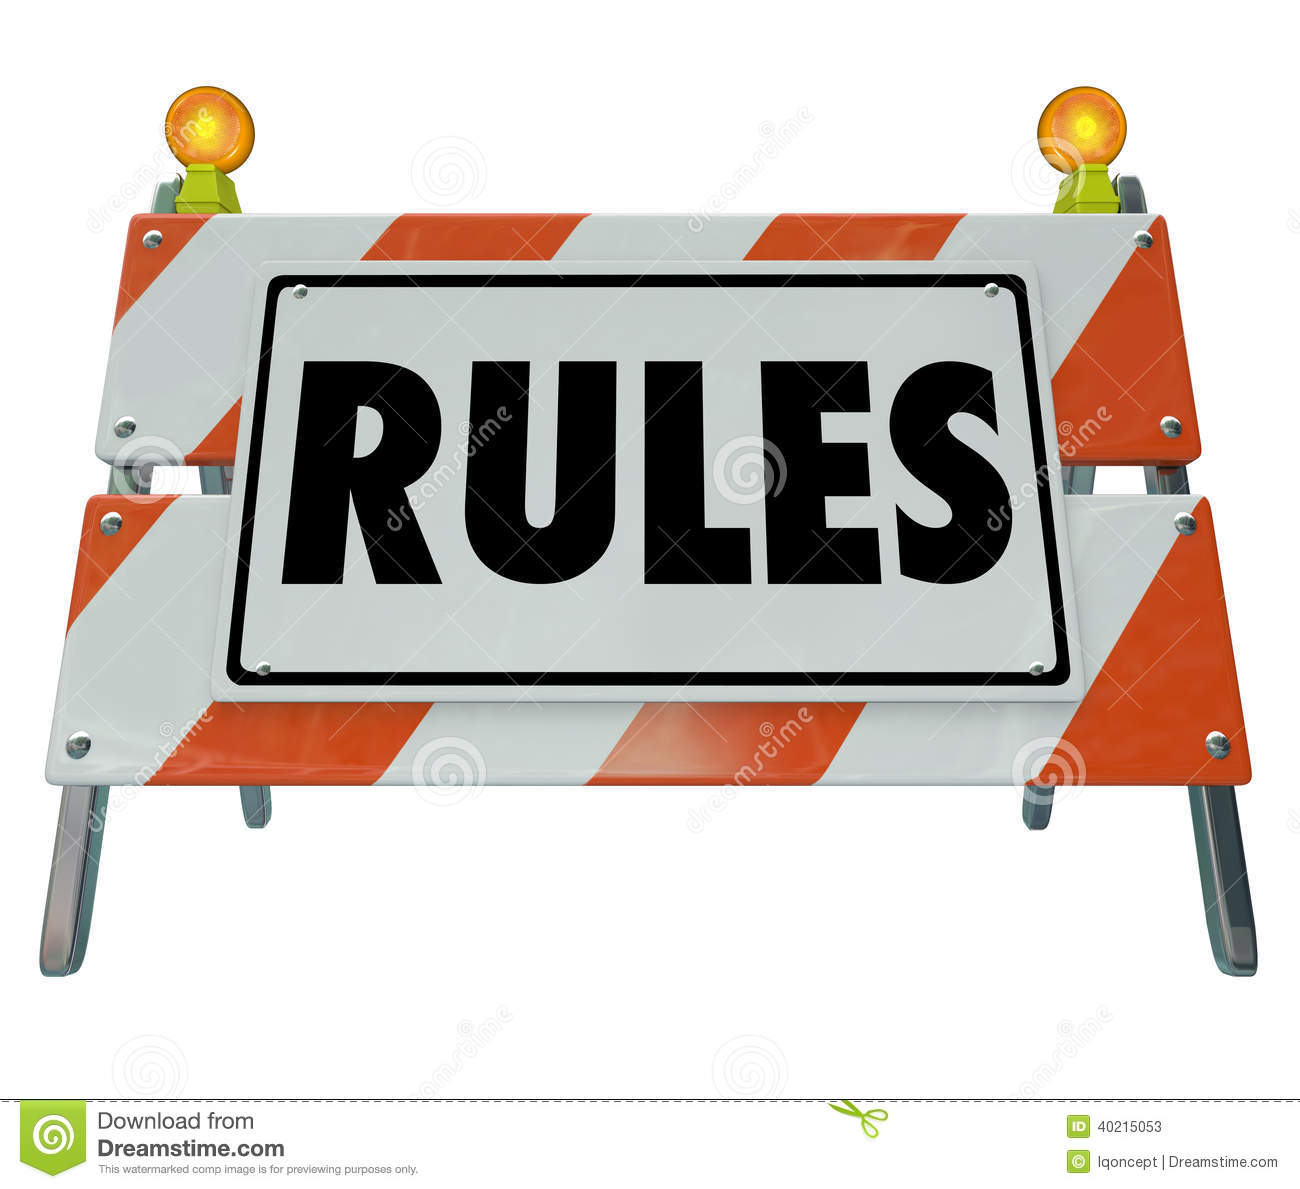 Rules sign barricade guidelines laws compliance stock for Construction rules and regulations